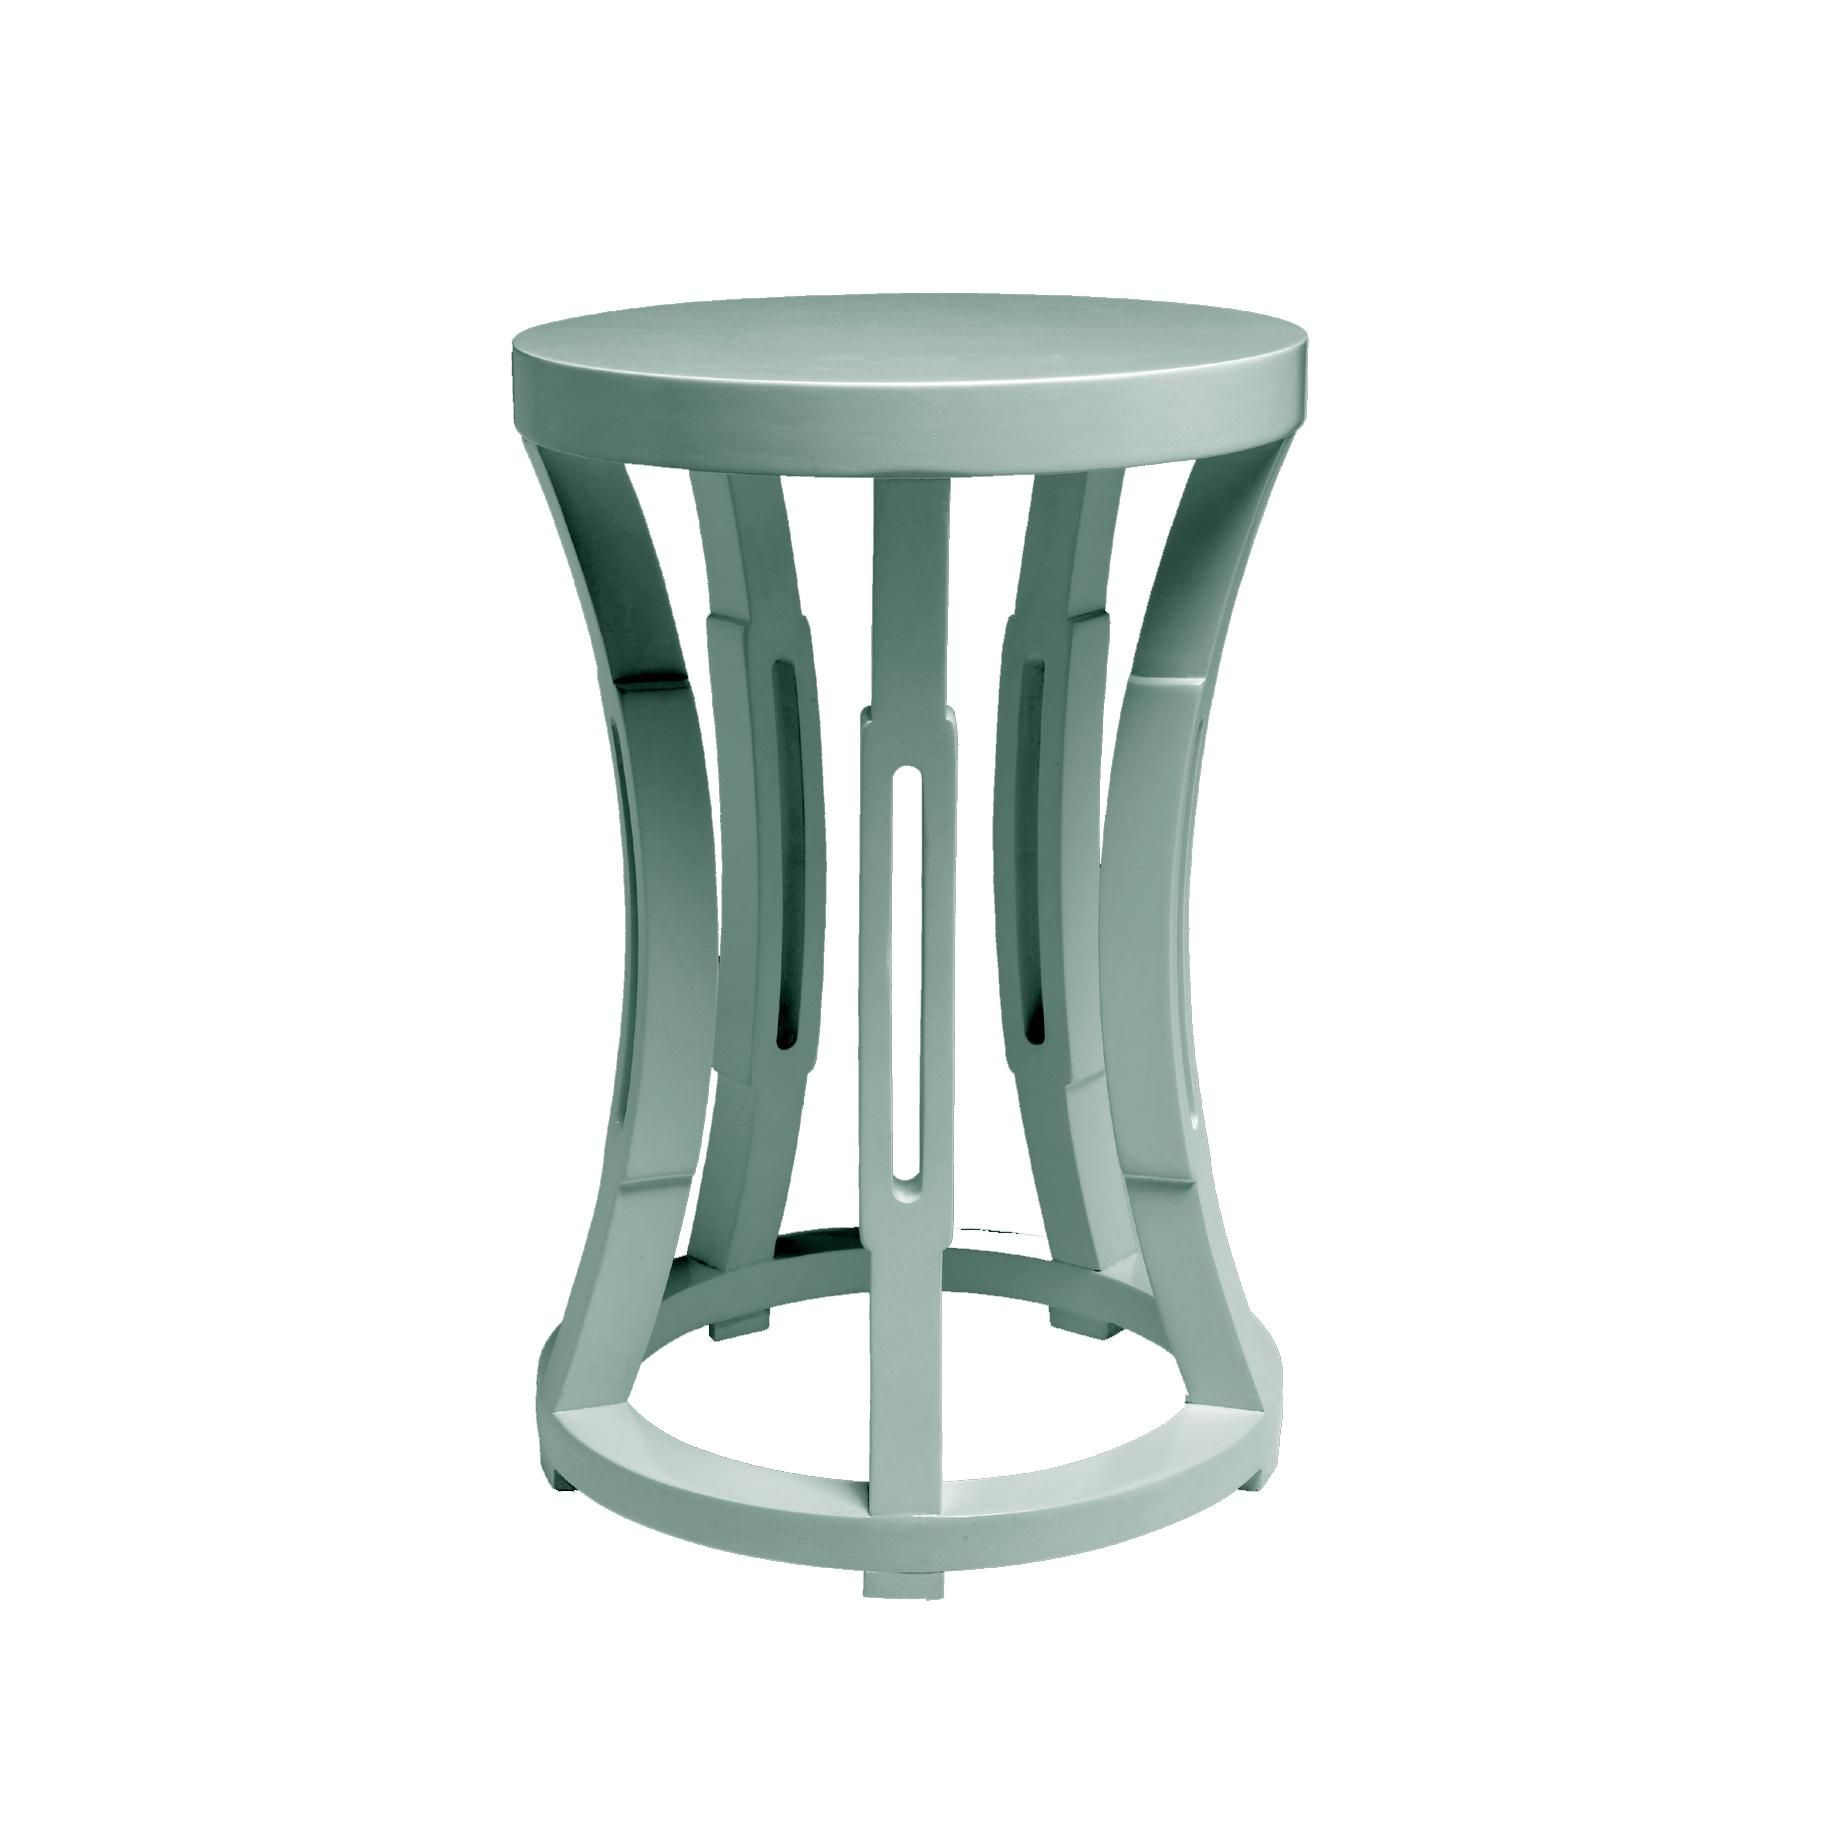 Hourglass Side Table in Light Blue